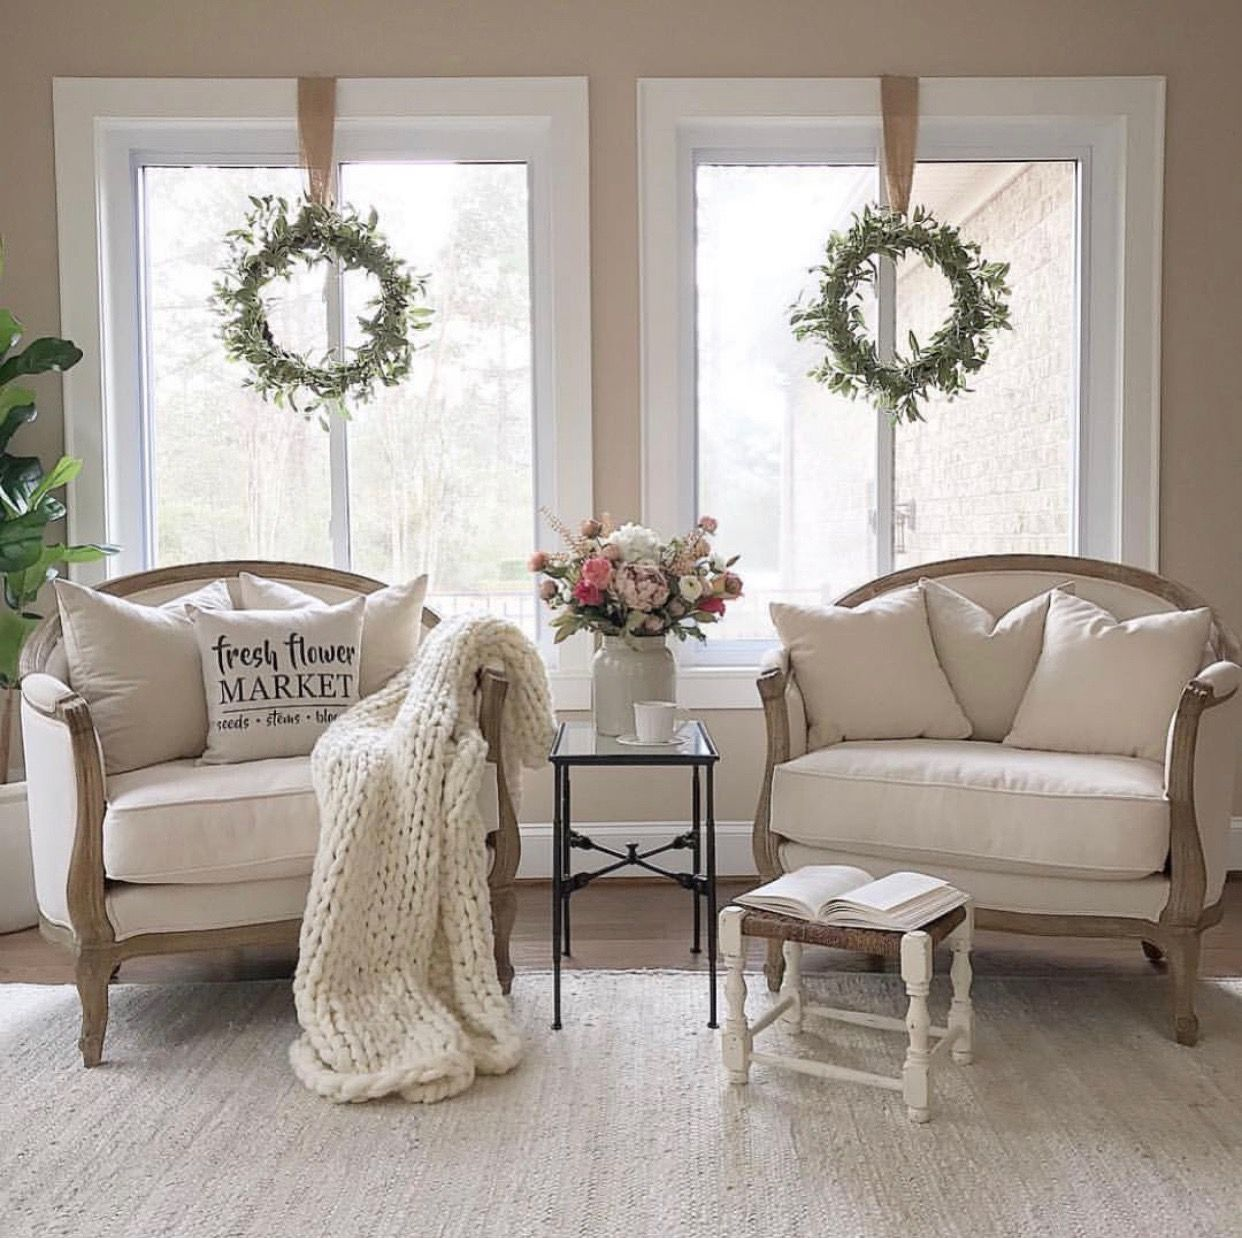 home by bailee kloiber sitting room decor french on modern luxurious bedroom ideas decoration some inspiration to advise you in decorating your room id=22485